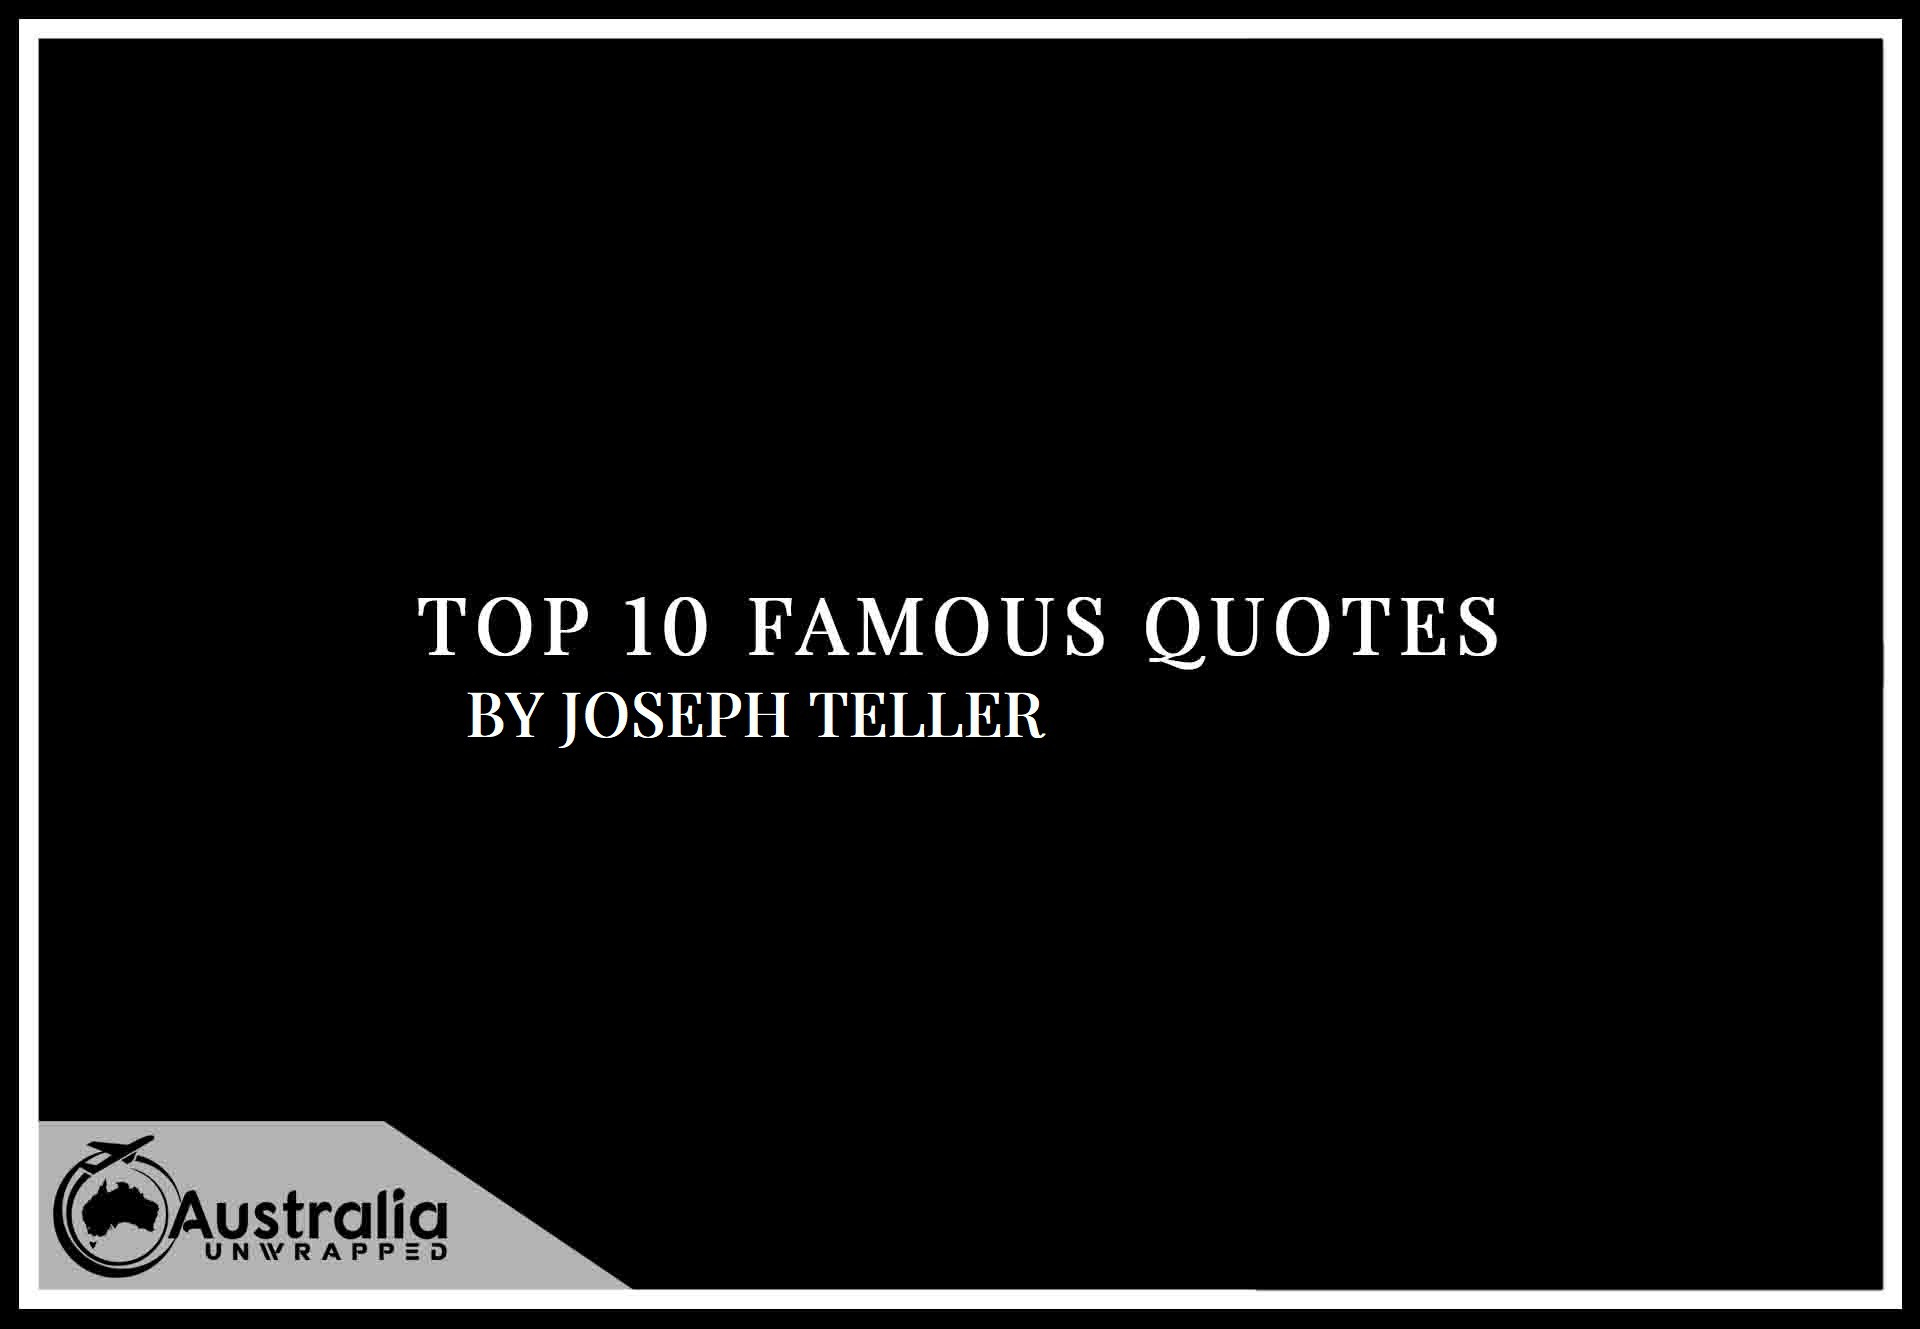 Top 10 Famous Quotes by Author Joseph Teller